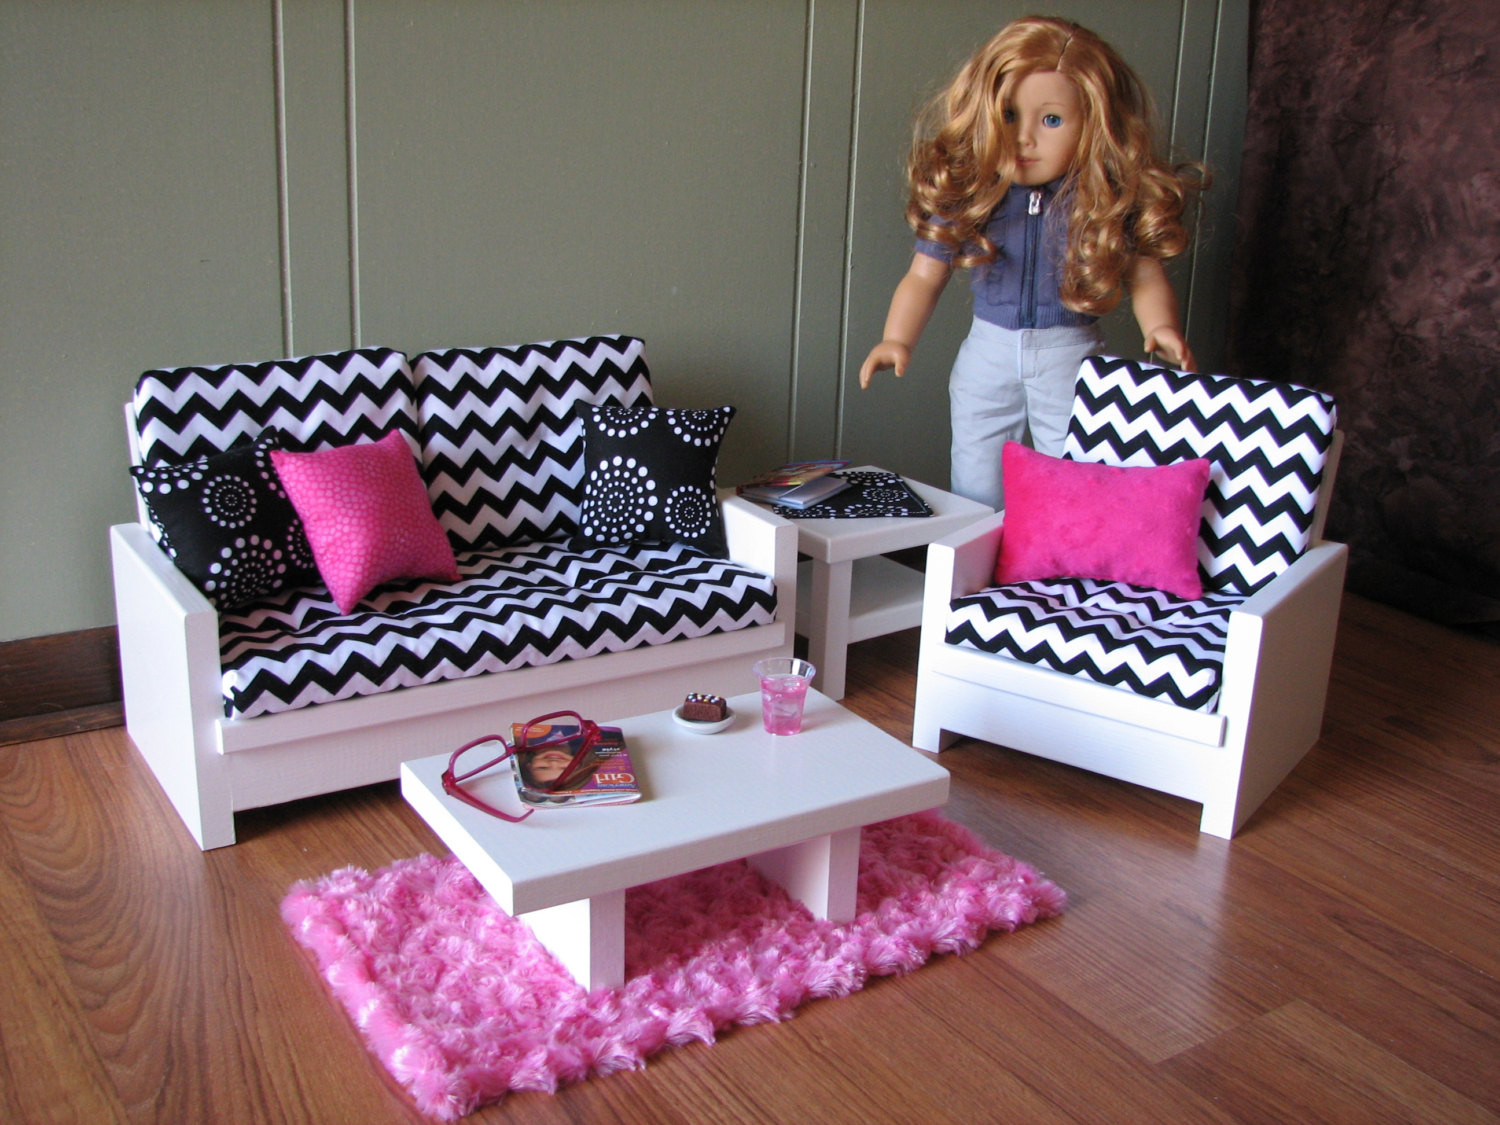 Best ideas about American Girl Doll Furniture DIY . Save or Pin 18 Doll Furniture American Girl sized Living Room Now.